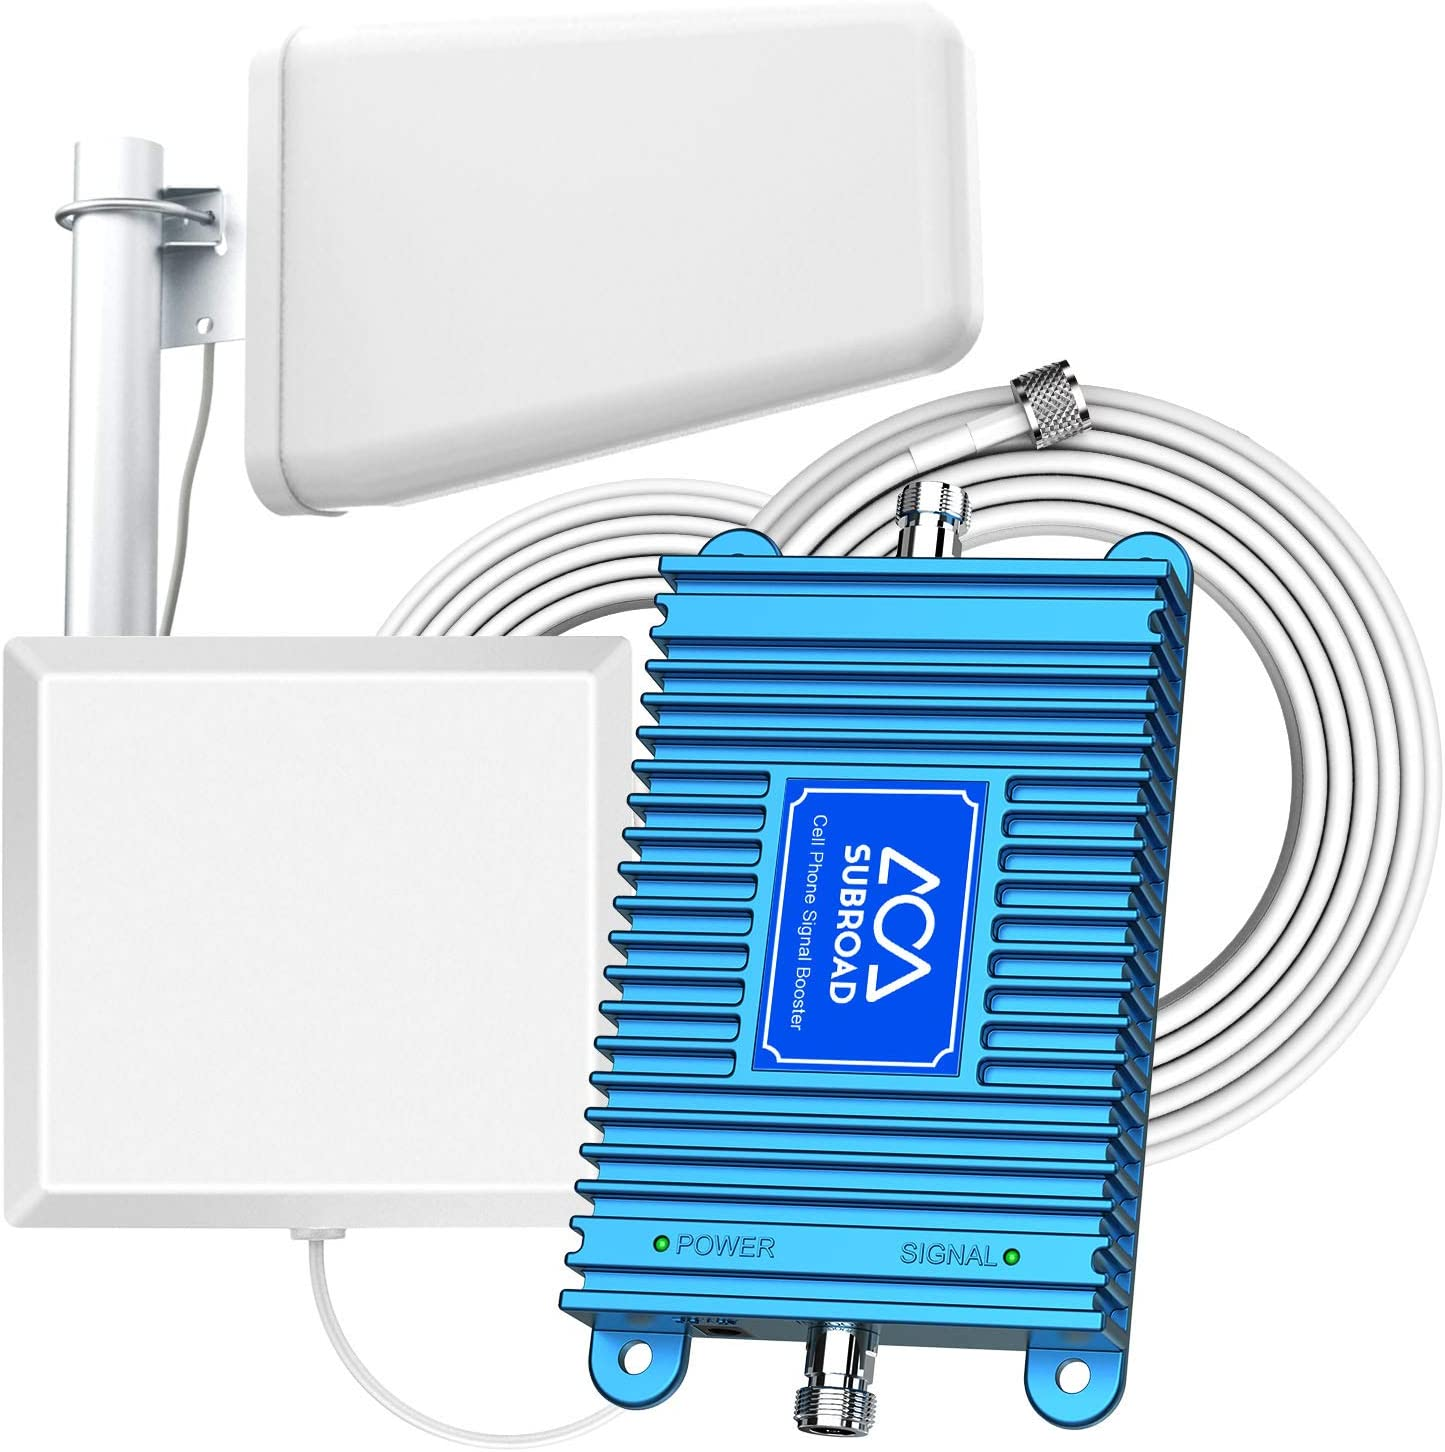 Verizon Antenna Signal Booster for Home 4G LTE 700MHz Band 13/12/17 AT&T T-Mobile Straight Talk U.S. Cellular Boost Voice and Data Cell Phone Signal Booster Cover Up to 5,000Sq Ft